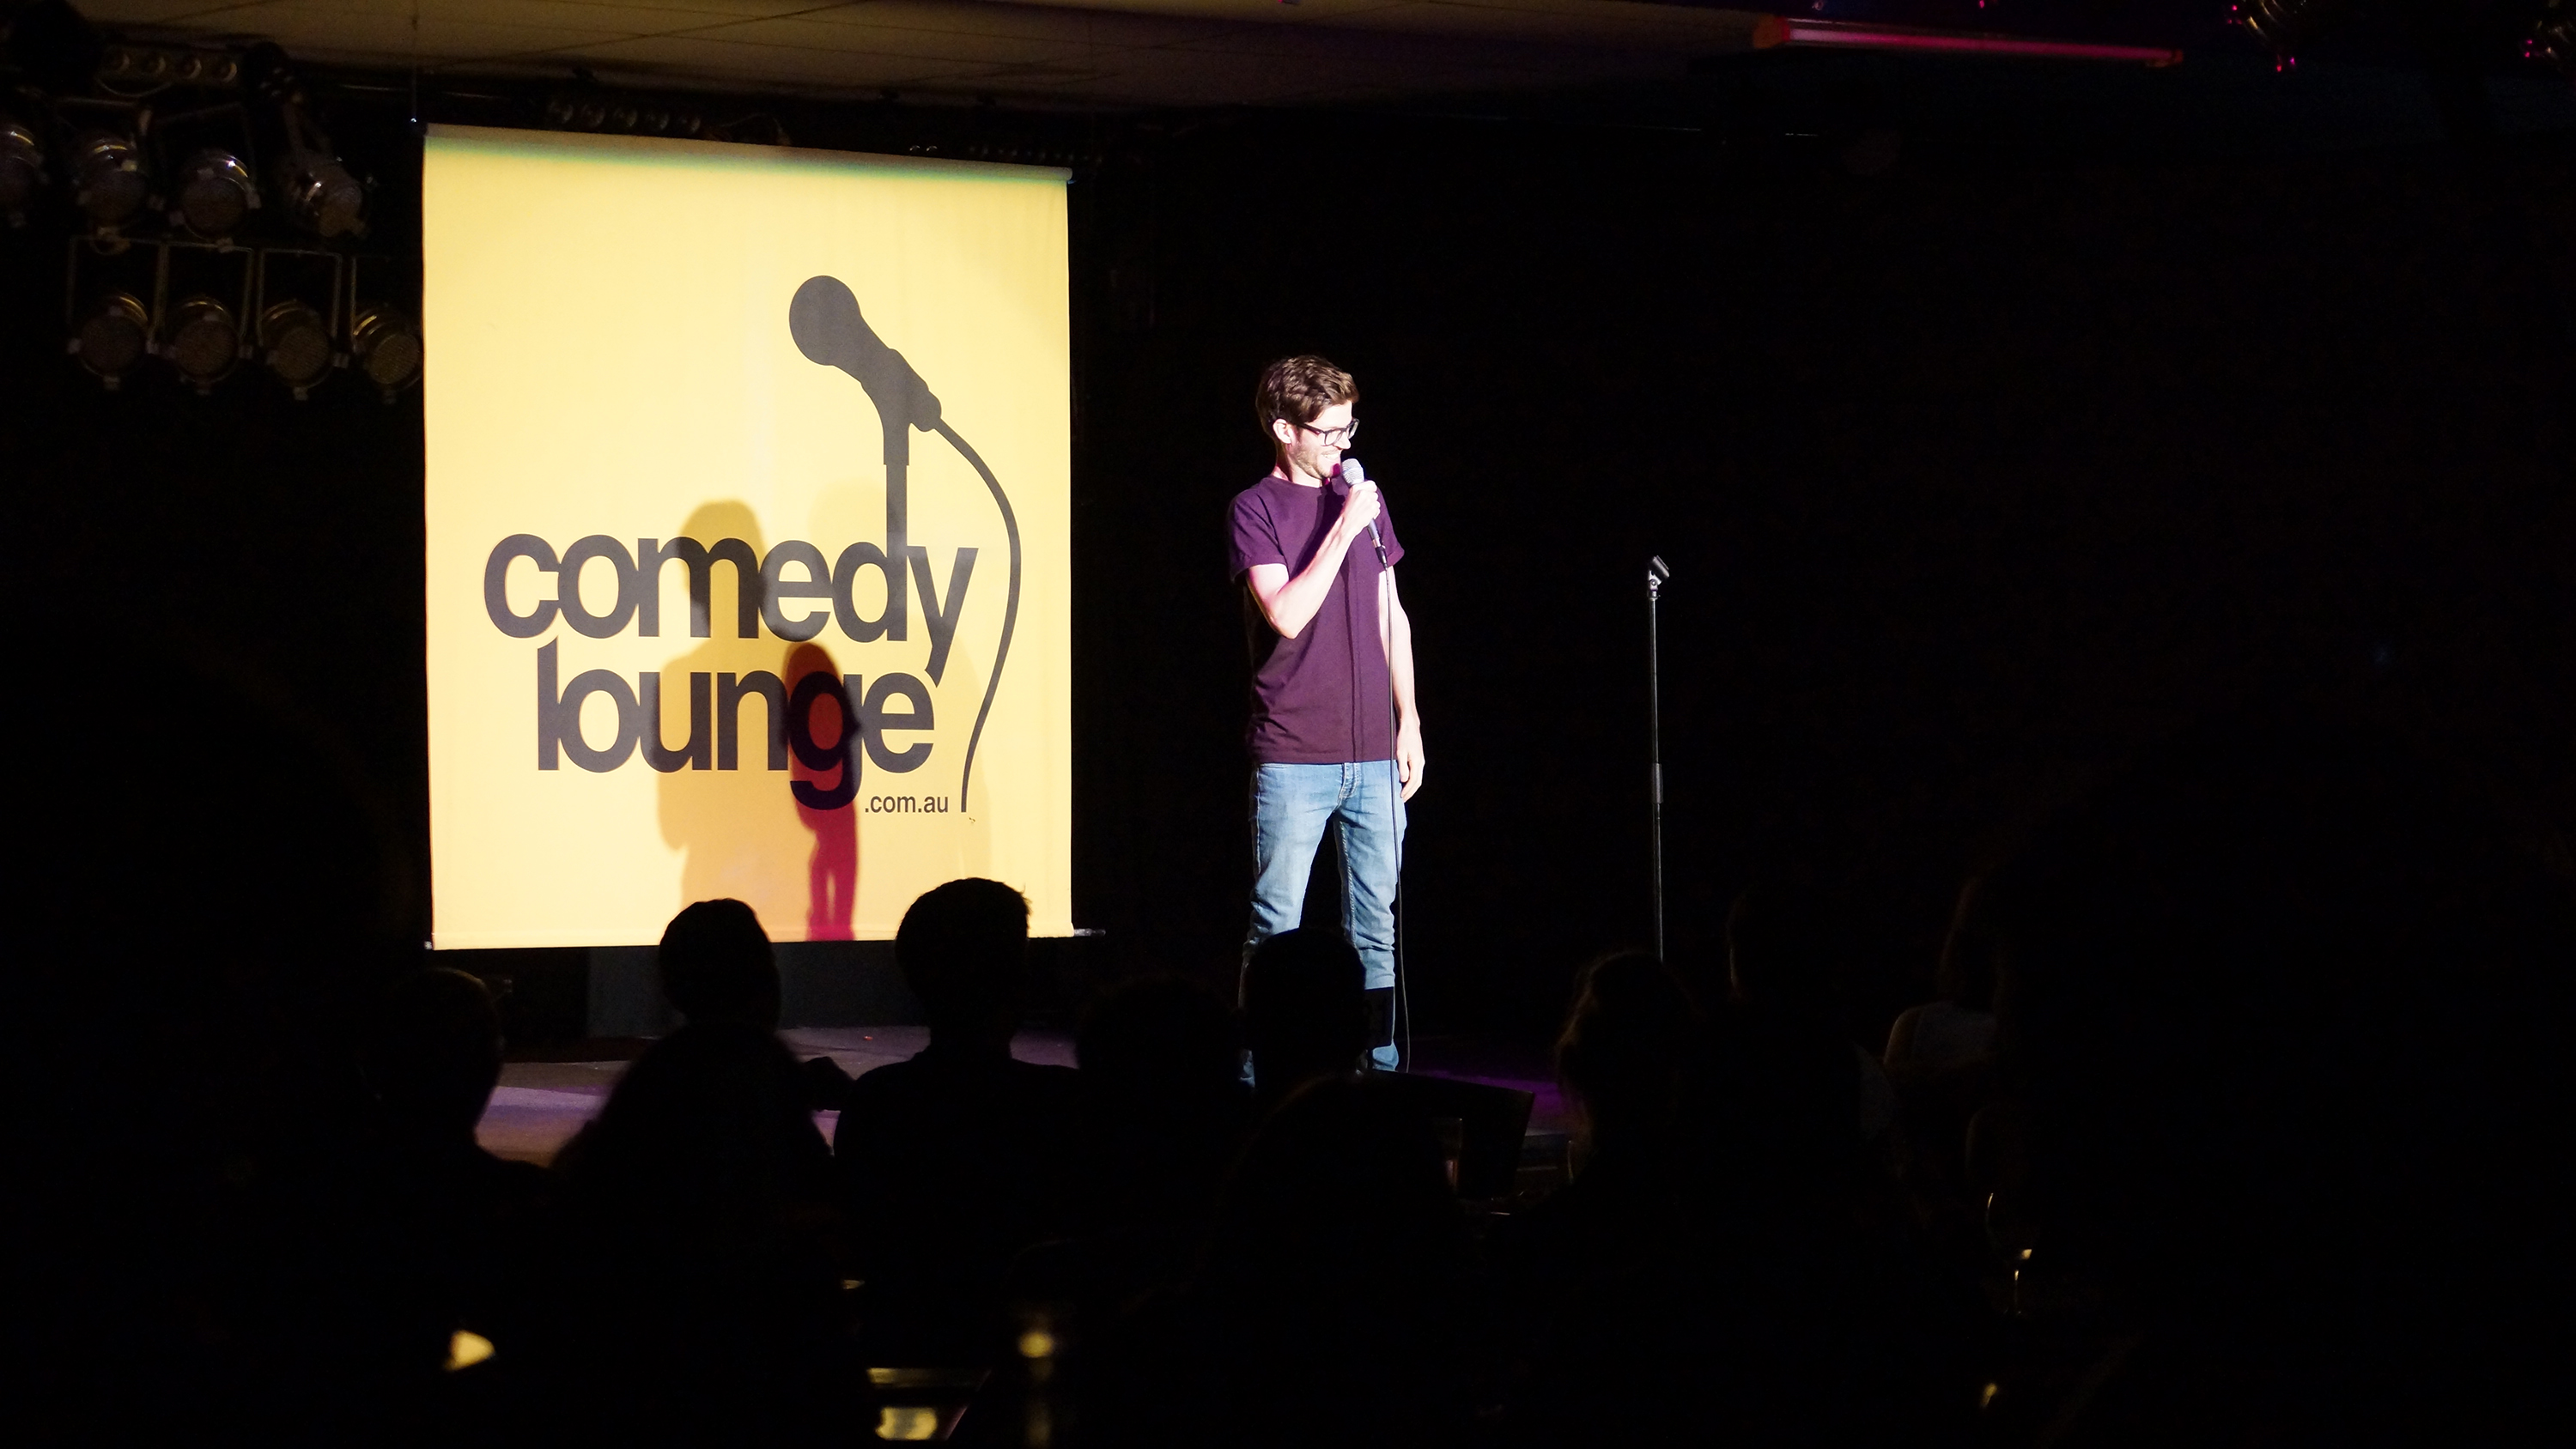 Comedy Lounge to open